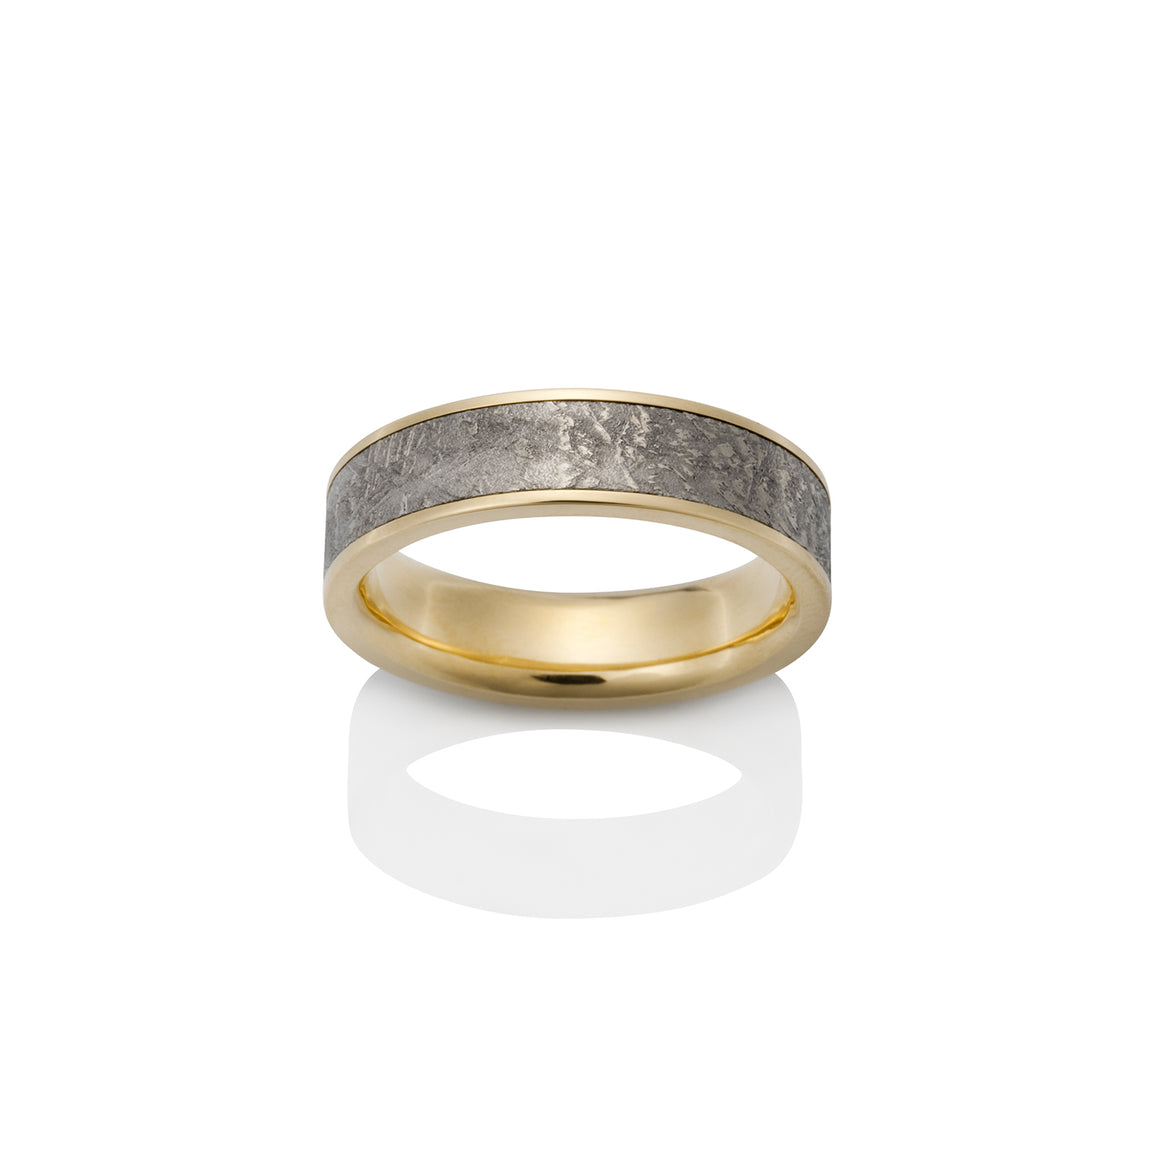 Sirius Meteorite Ring by Chris Ploof - 18k Yellow Gold - Talisman Collection Fine Jewelers